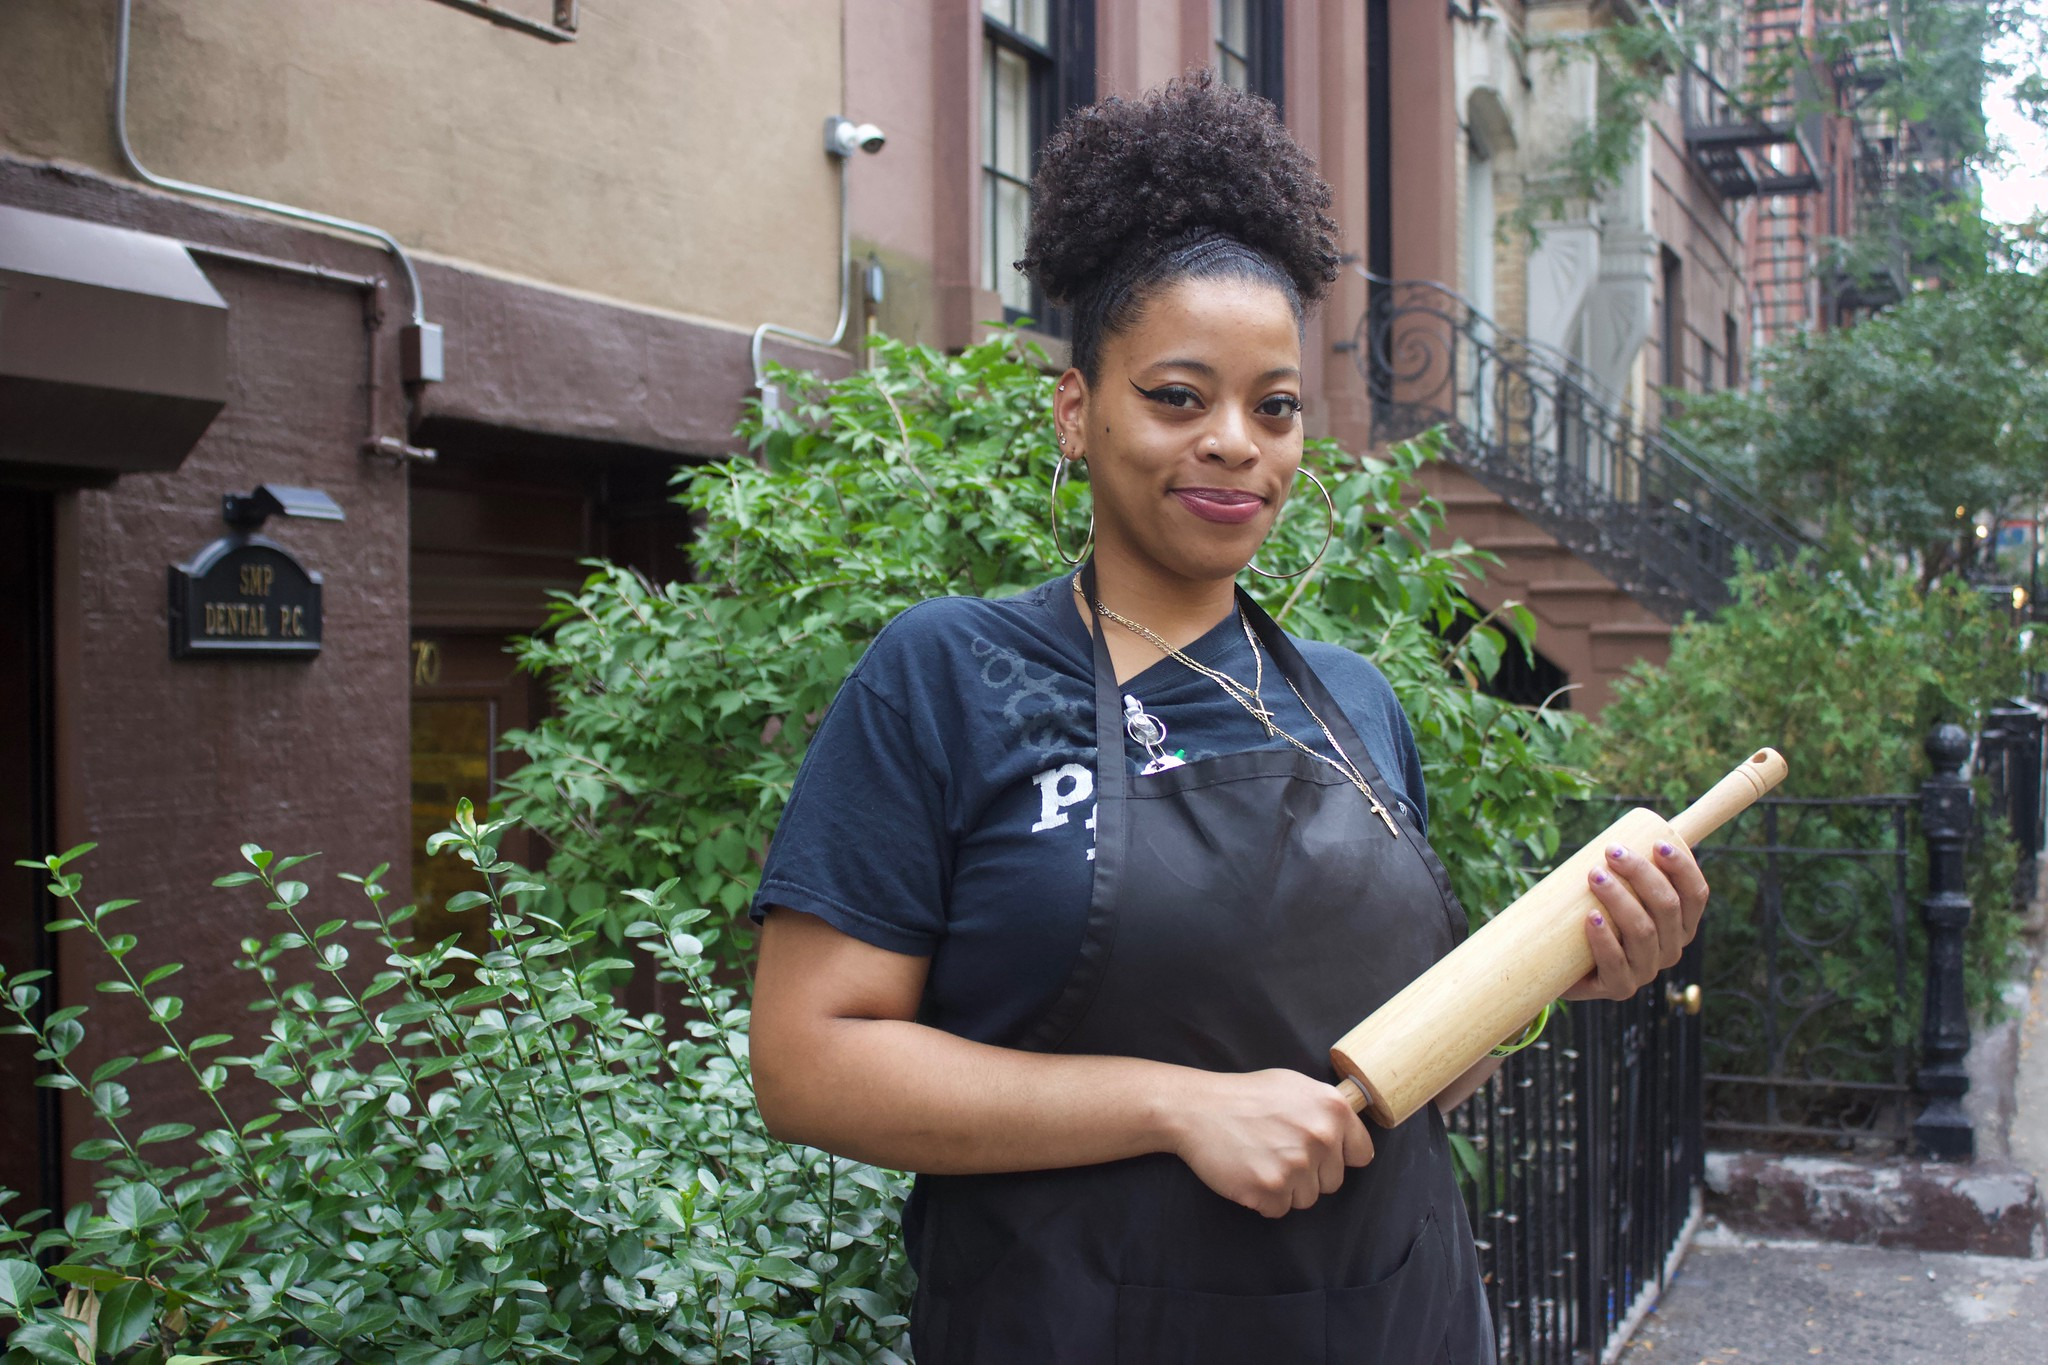 A photo of Kianna Flowers holding a rolling pin.